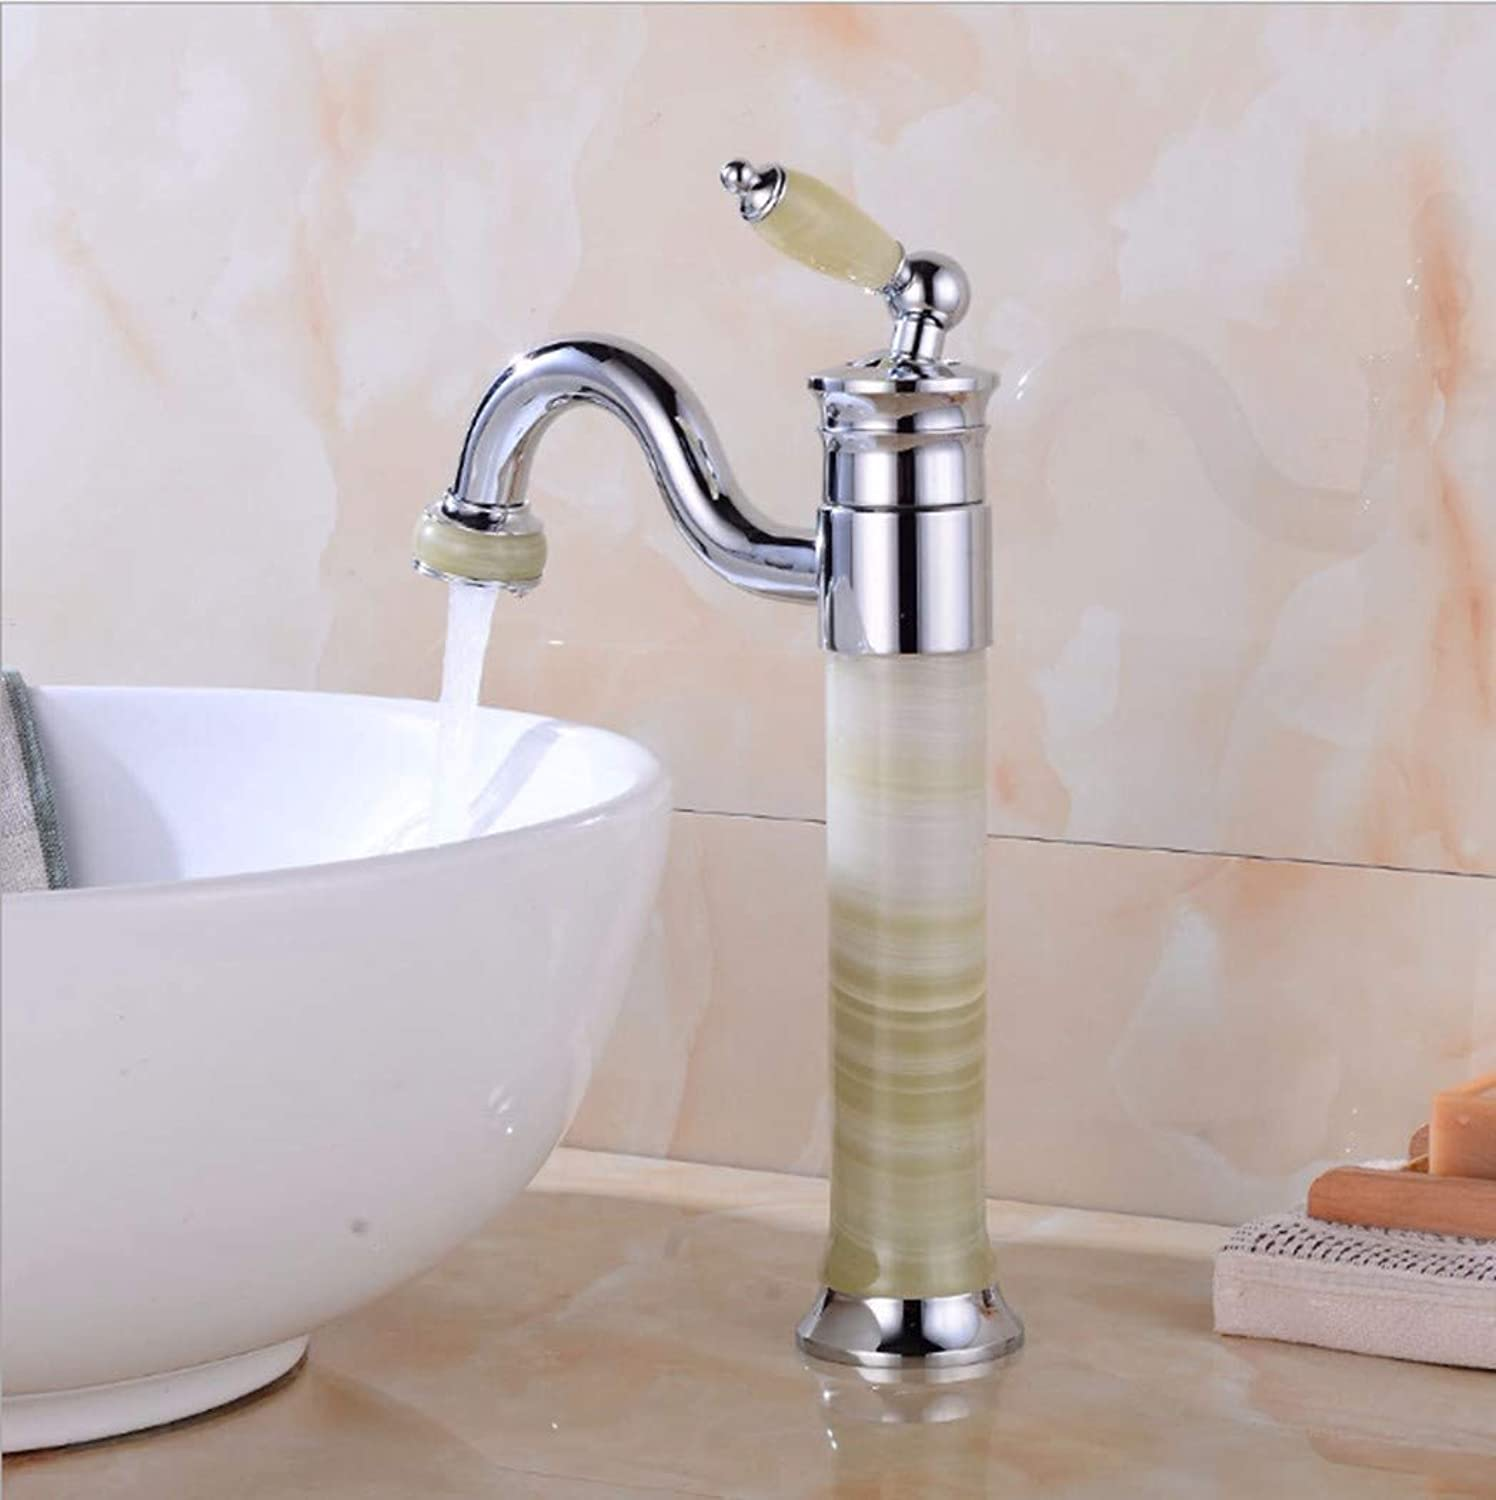 PatTheTap Bathroom Faucet Retro Copper Metal Jade Swivel for Washbasin Hot and Cold Water Mixing